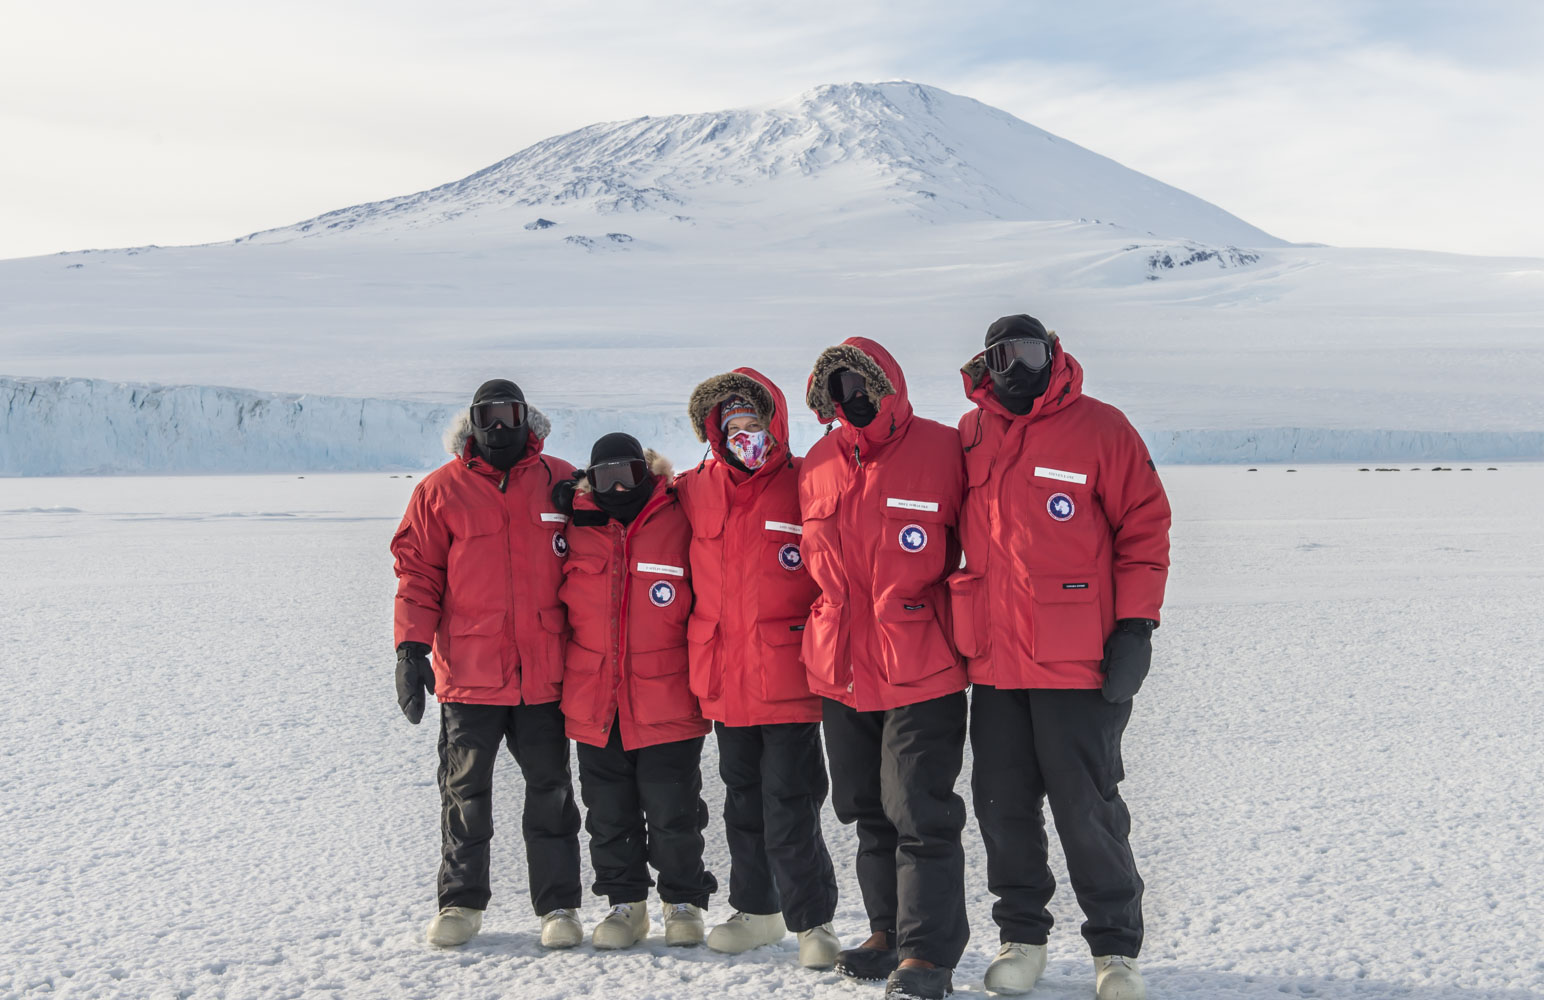 Our team in front of Mt. Erebus (an active volcano on Ross Island, where McMurdo Station is located) during sea ice training.